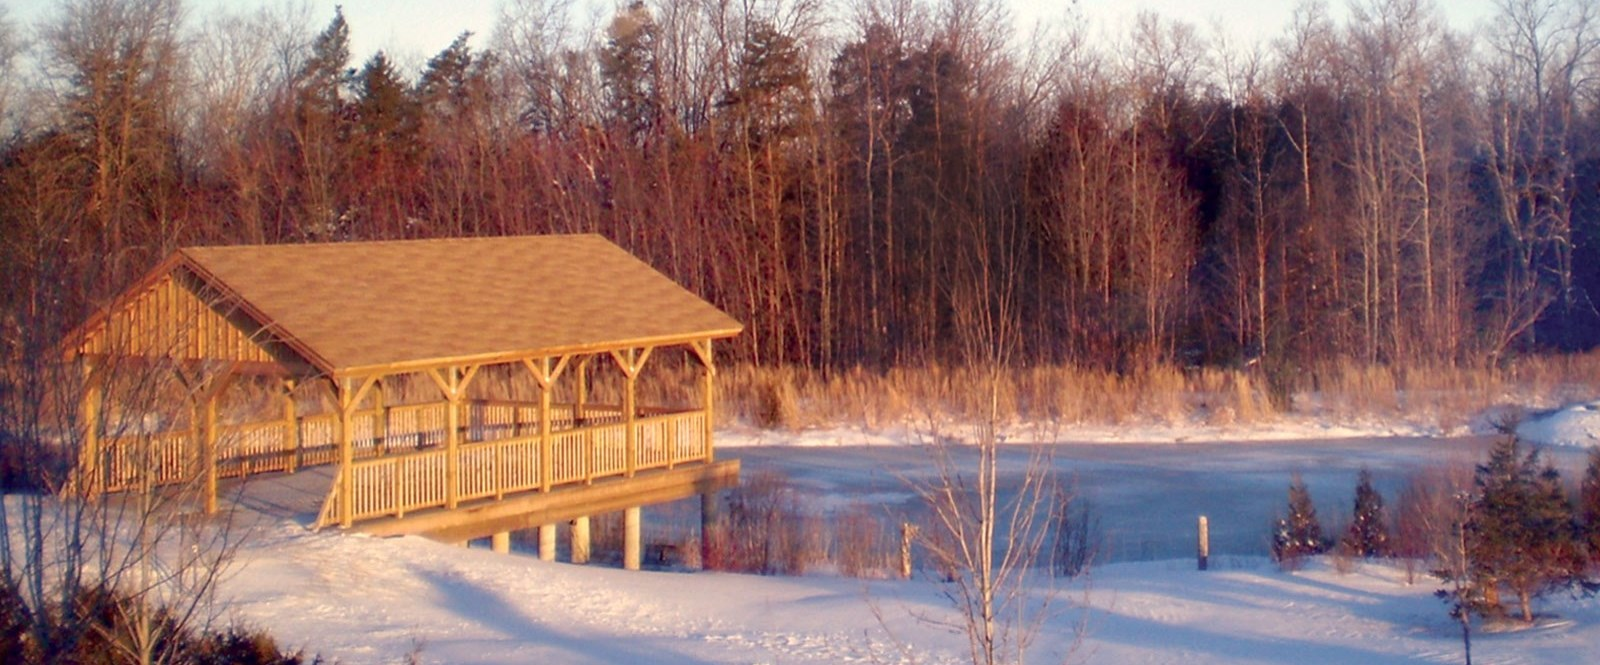 gazebo overlooking frozen pond